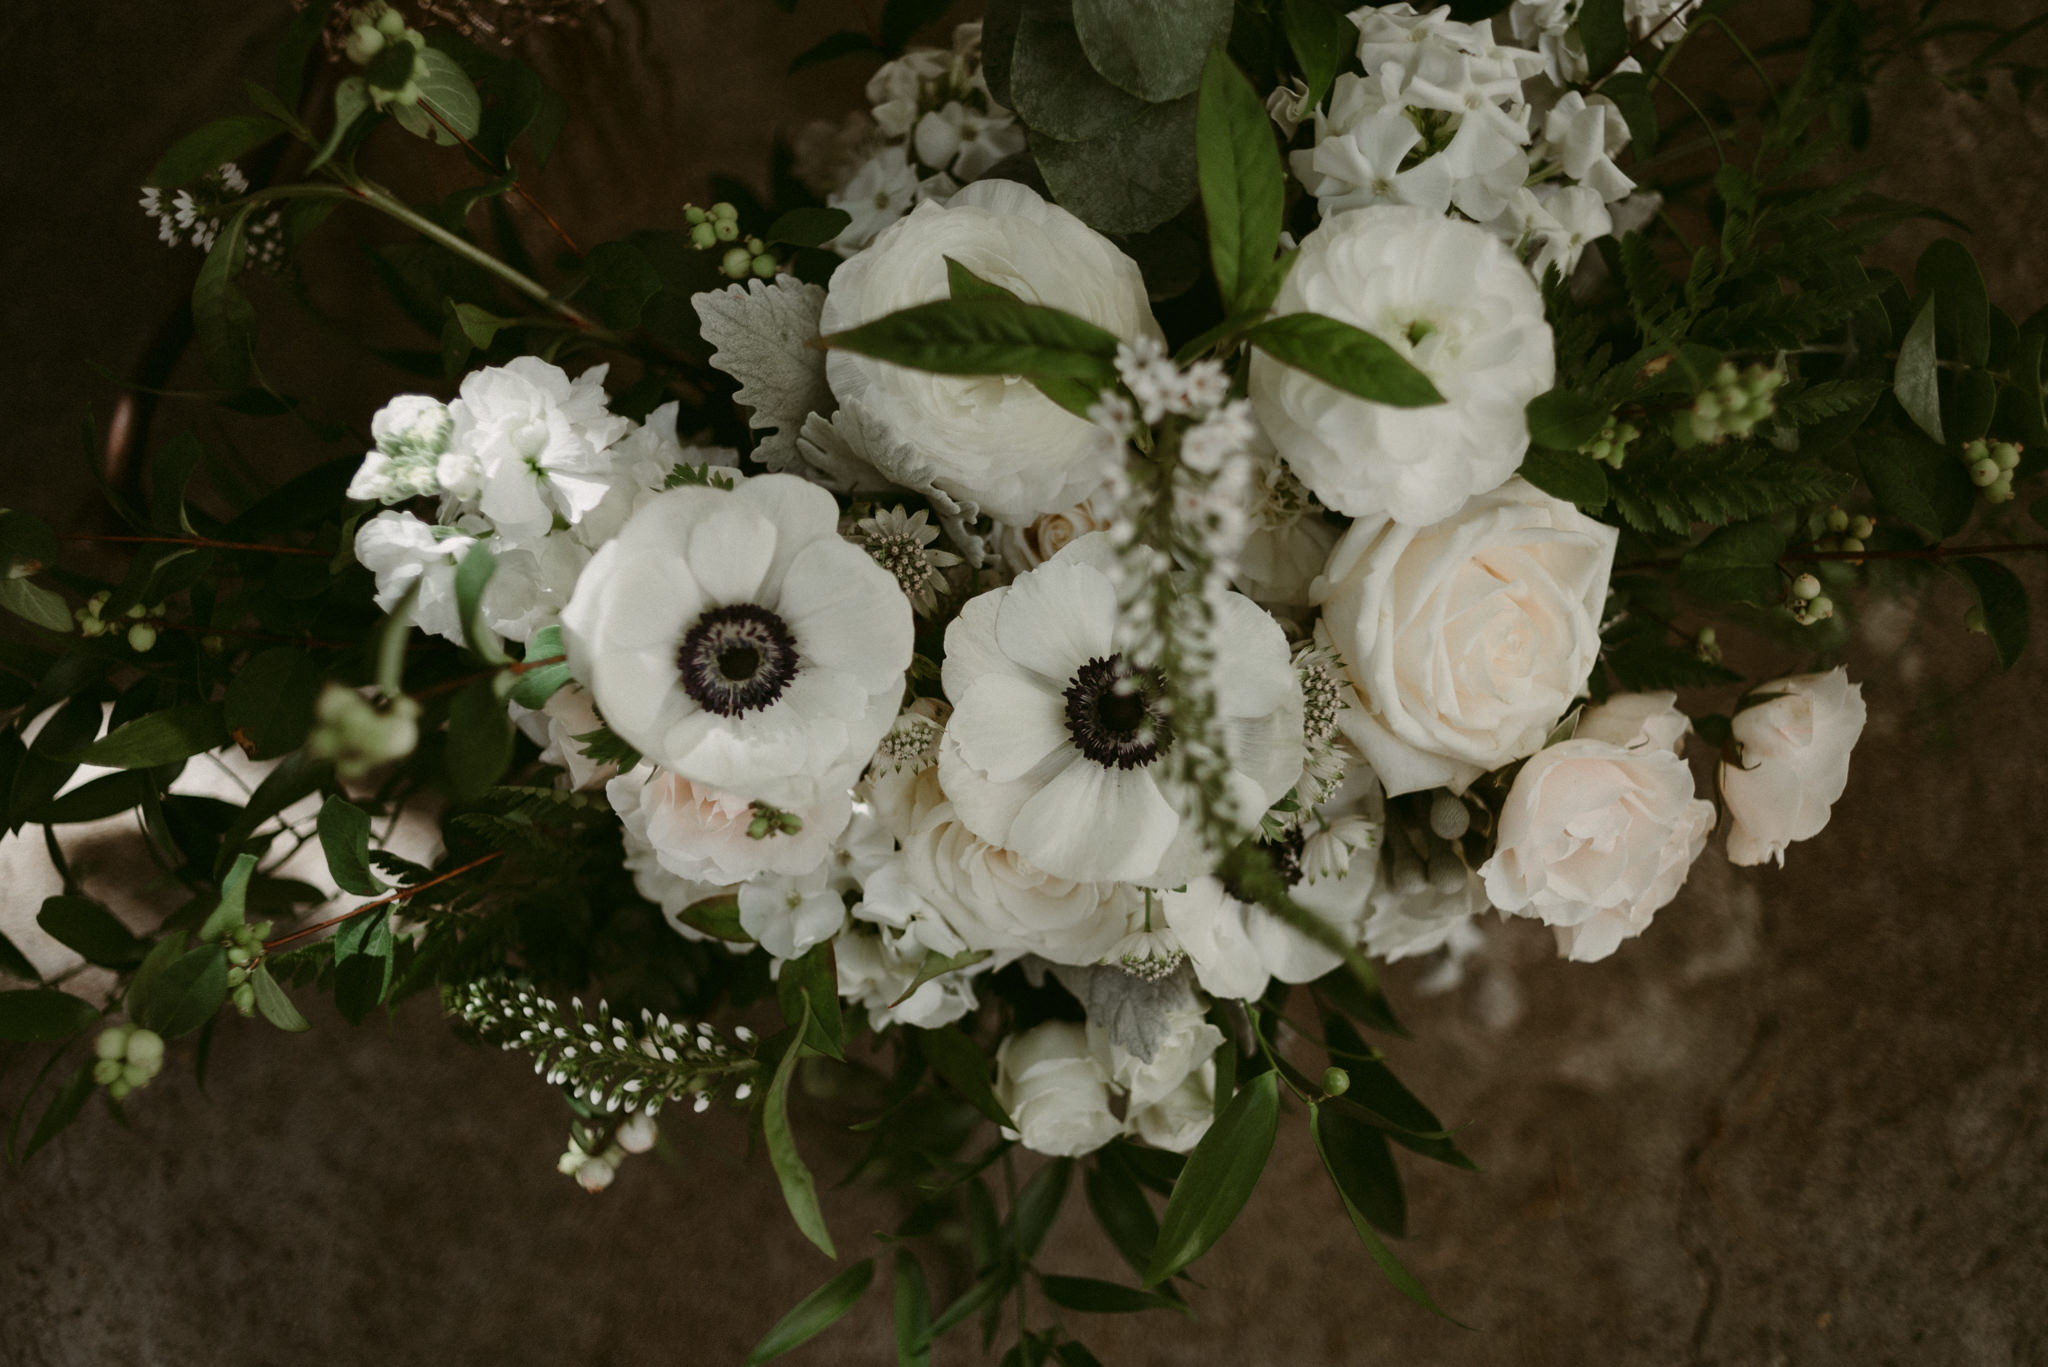 close up of white roses and poppies in wedding bouquet